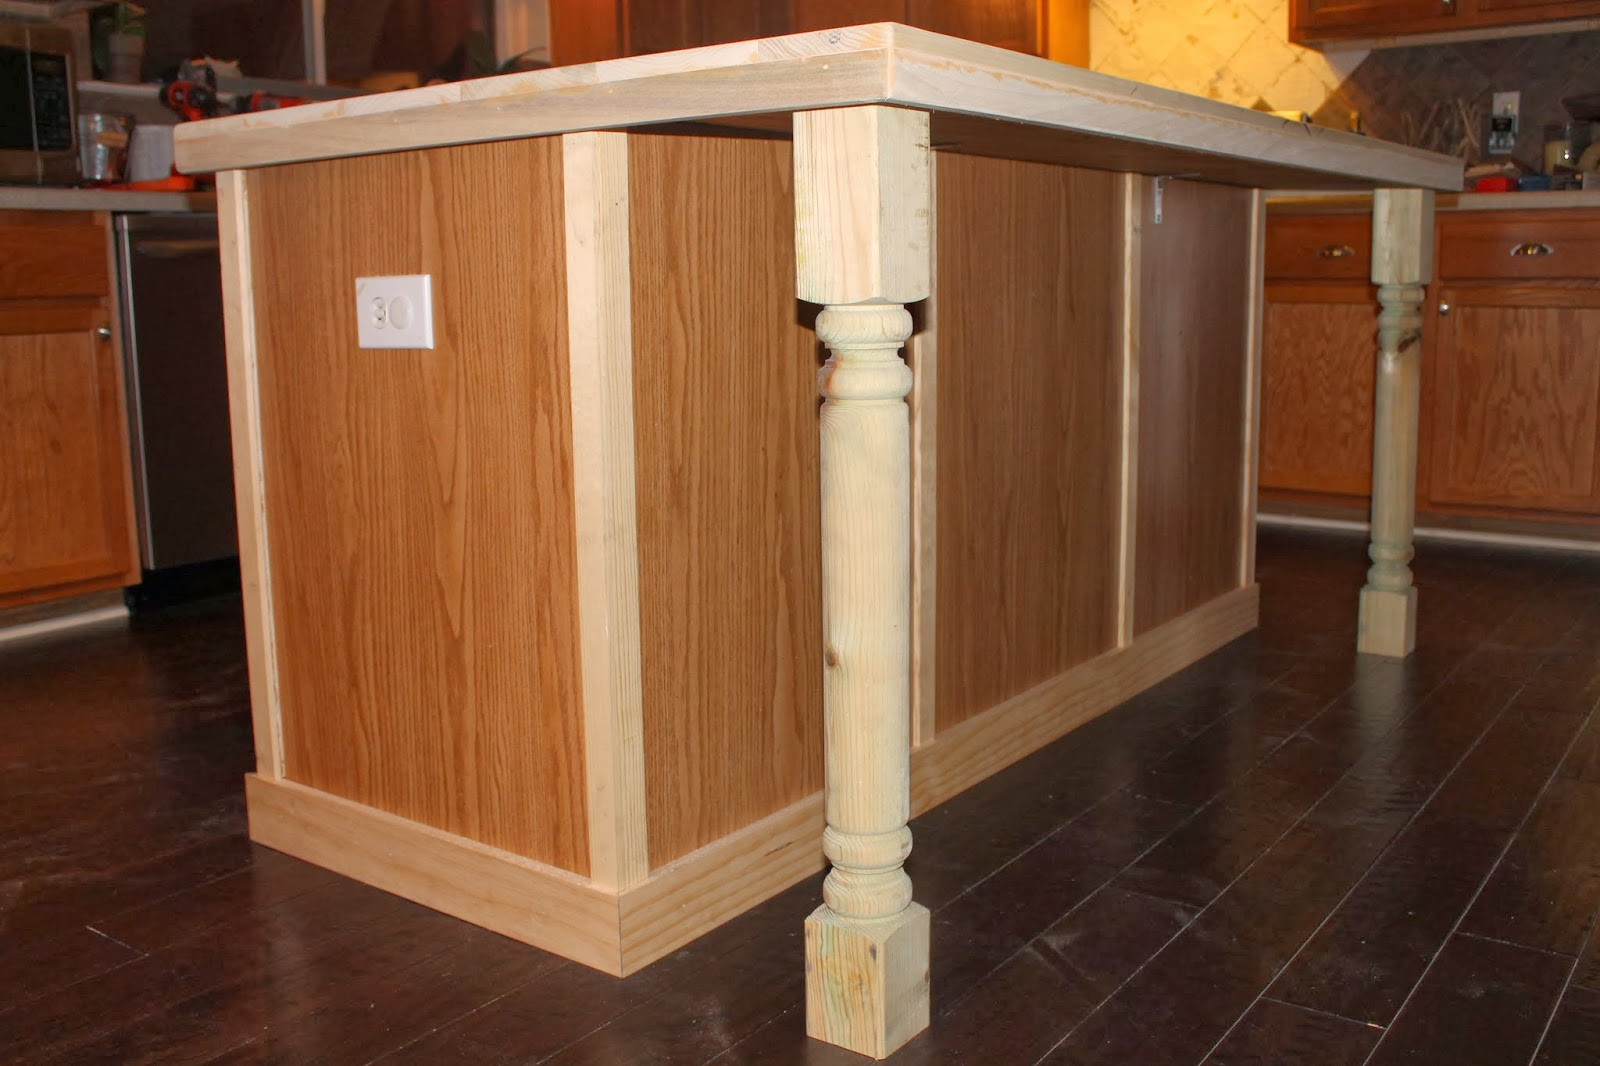 Kitchen Cabinets With Legs Backsplash Photos The Ragged Wren Remodel